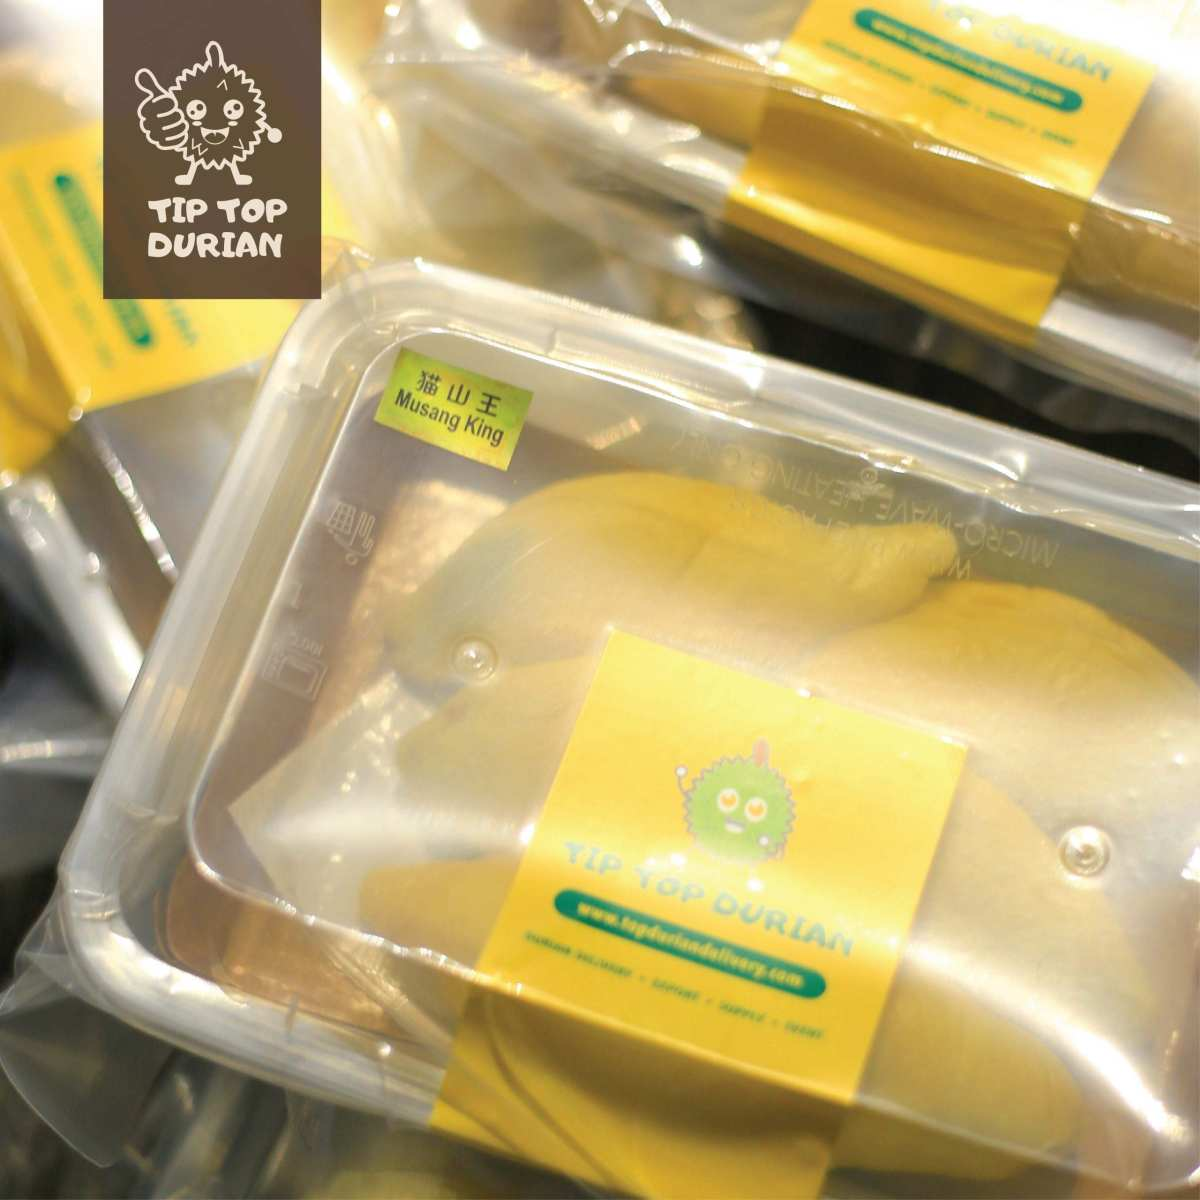 Musang King Premium In Packaging (2) | Tip Top Durian Delivery | Malaysia Top Fresh Durian Online Delivery